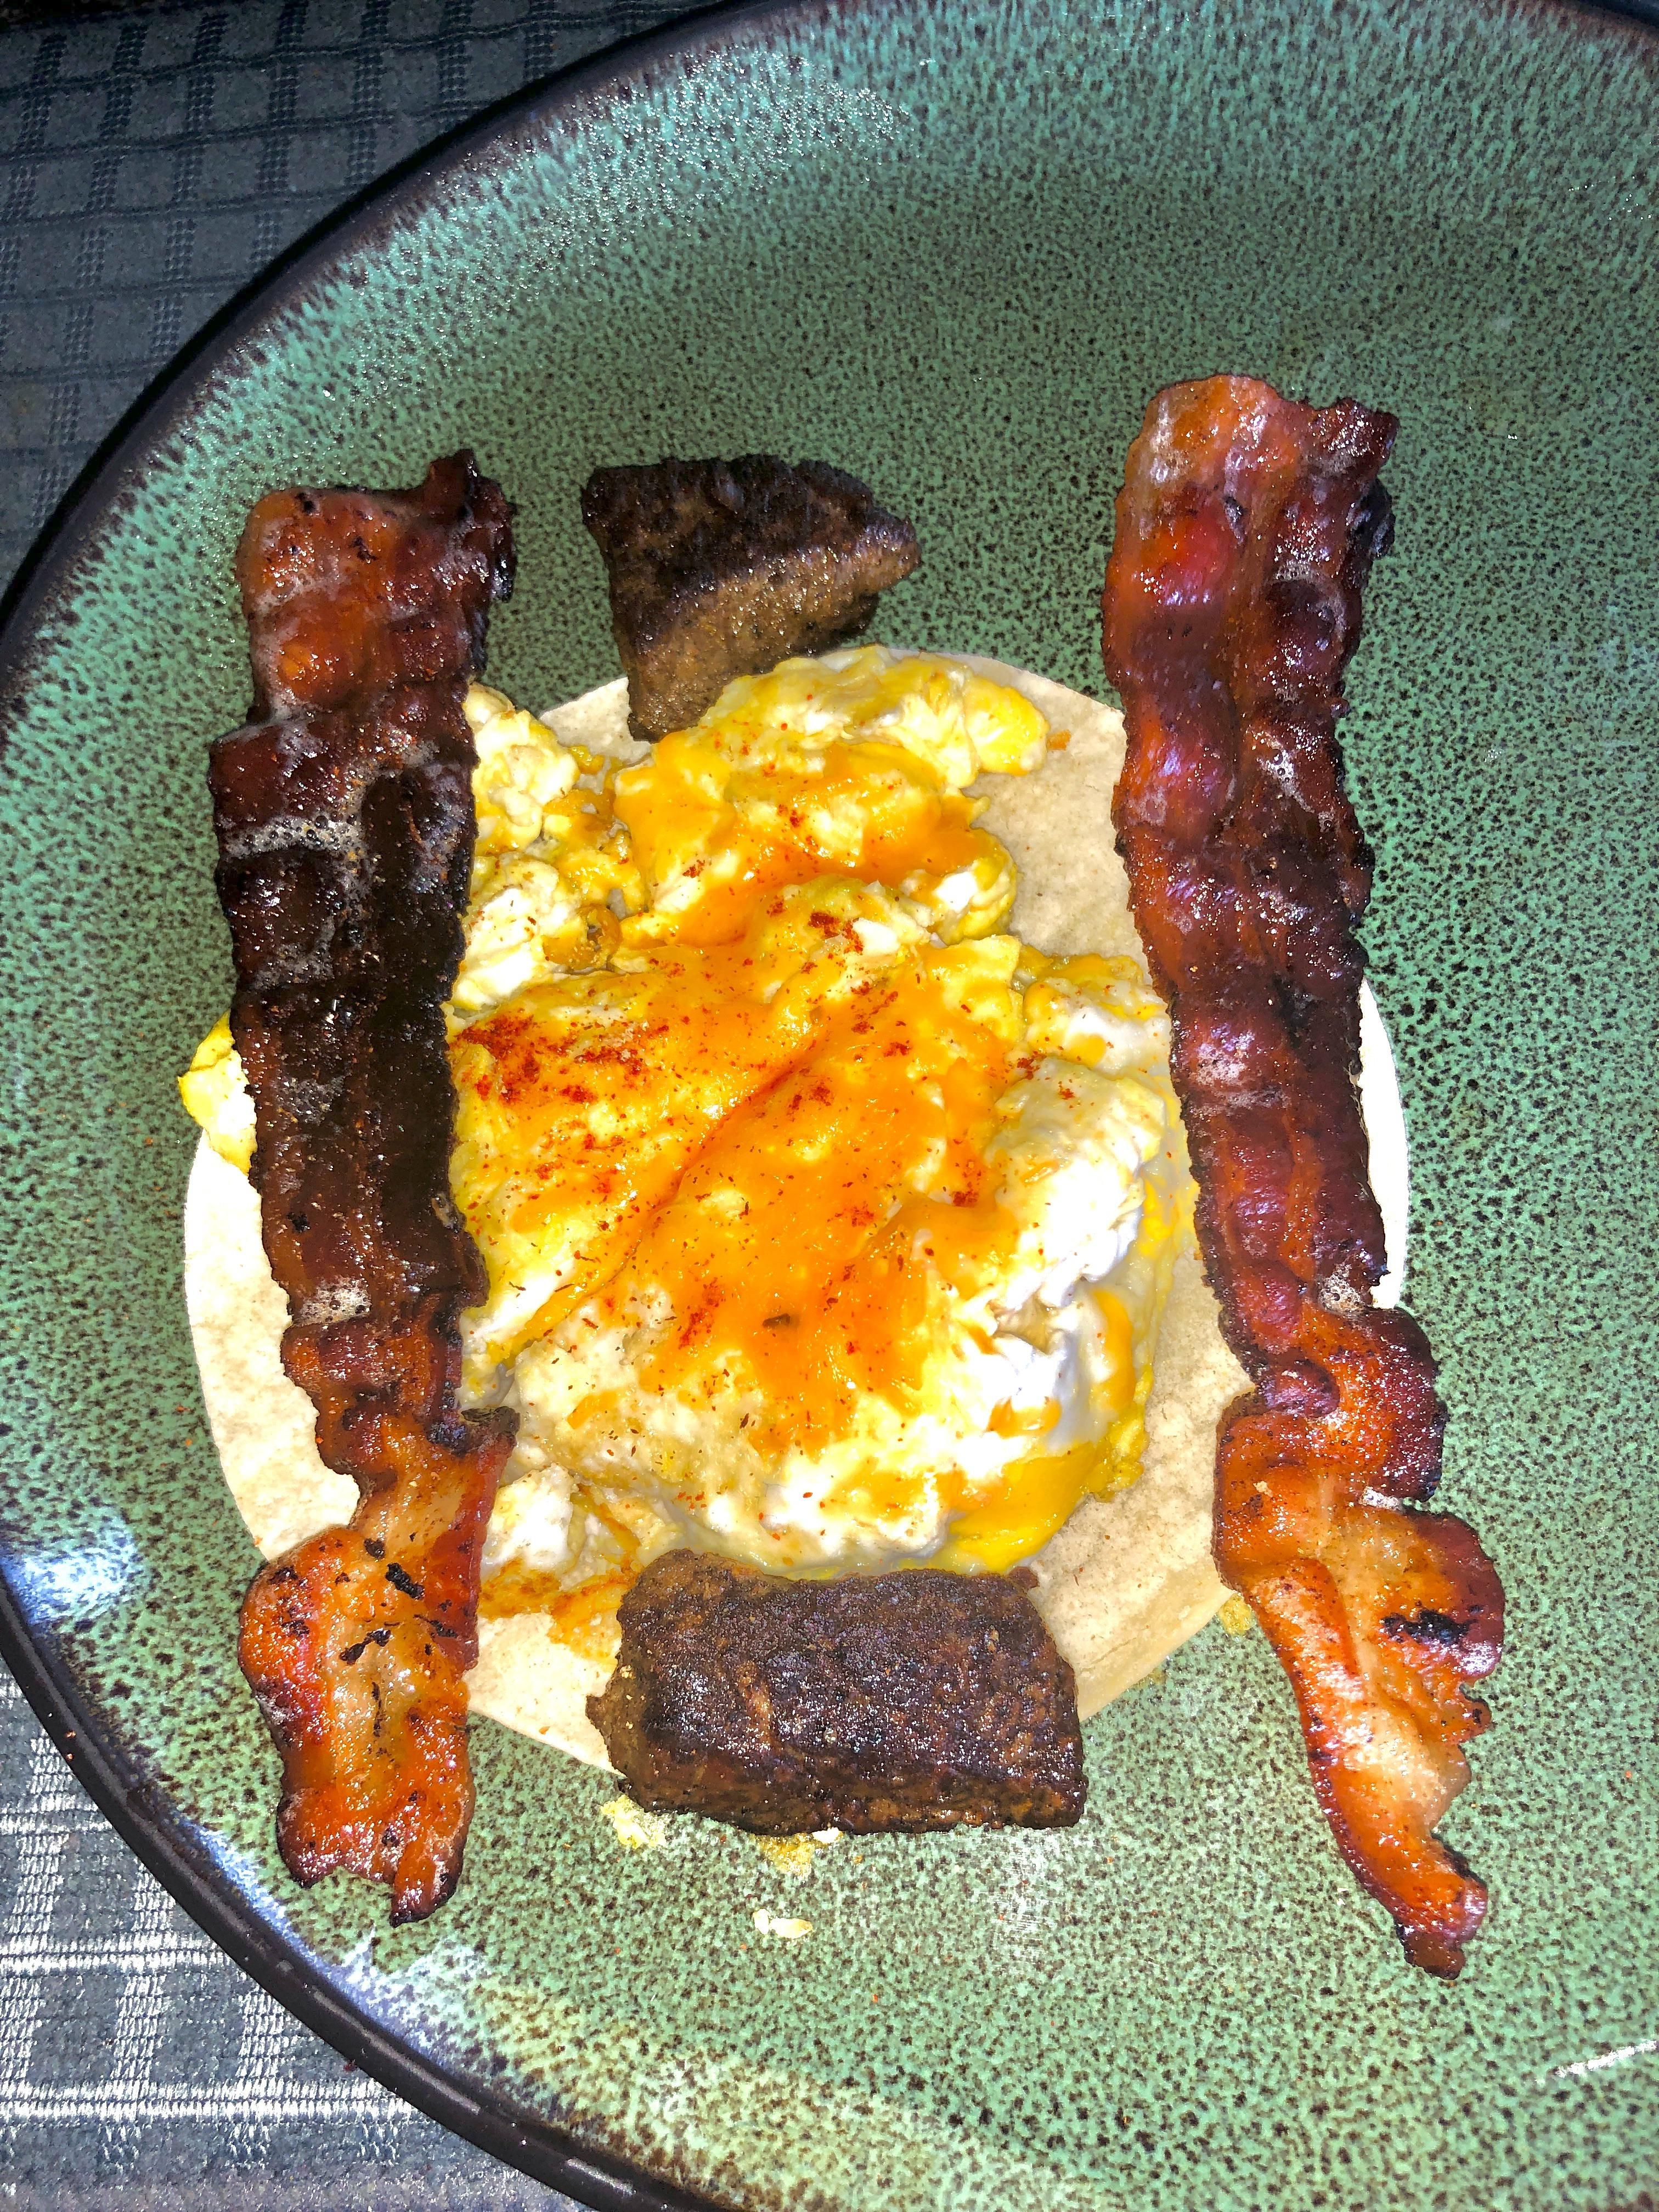 Made bacon with 2 small pieces of leftover steak with 2 scrammbled eggs with cheese and chilli / garlic seasoning on a toasted tortilla. YUMM! #food #healthy #healthyfood